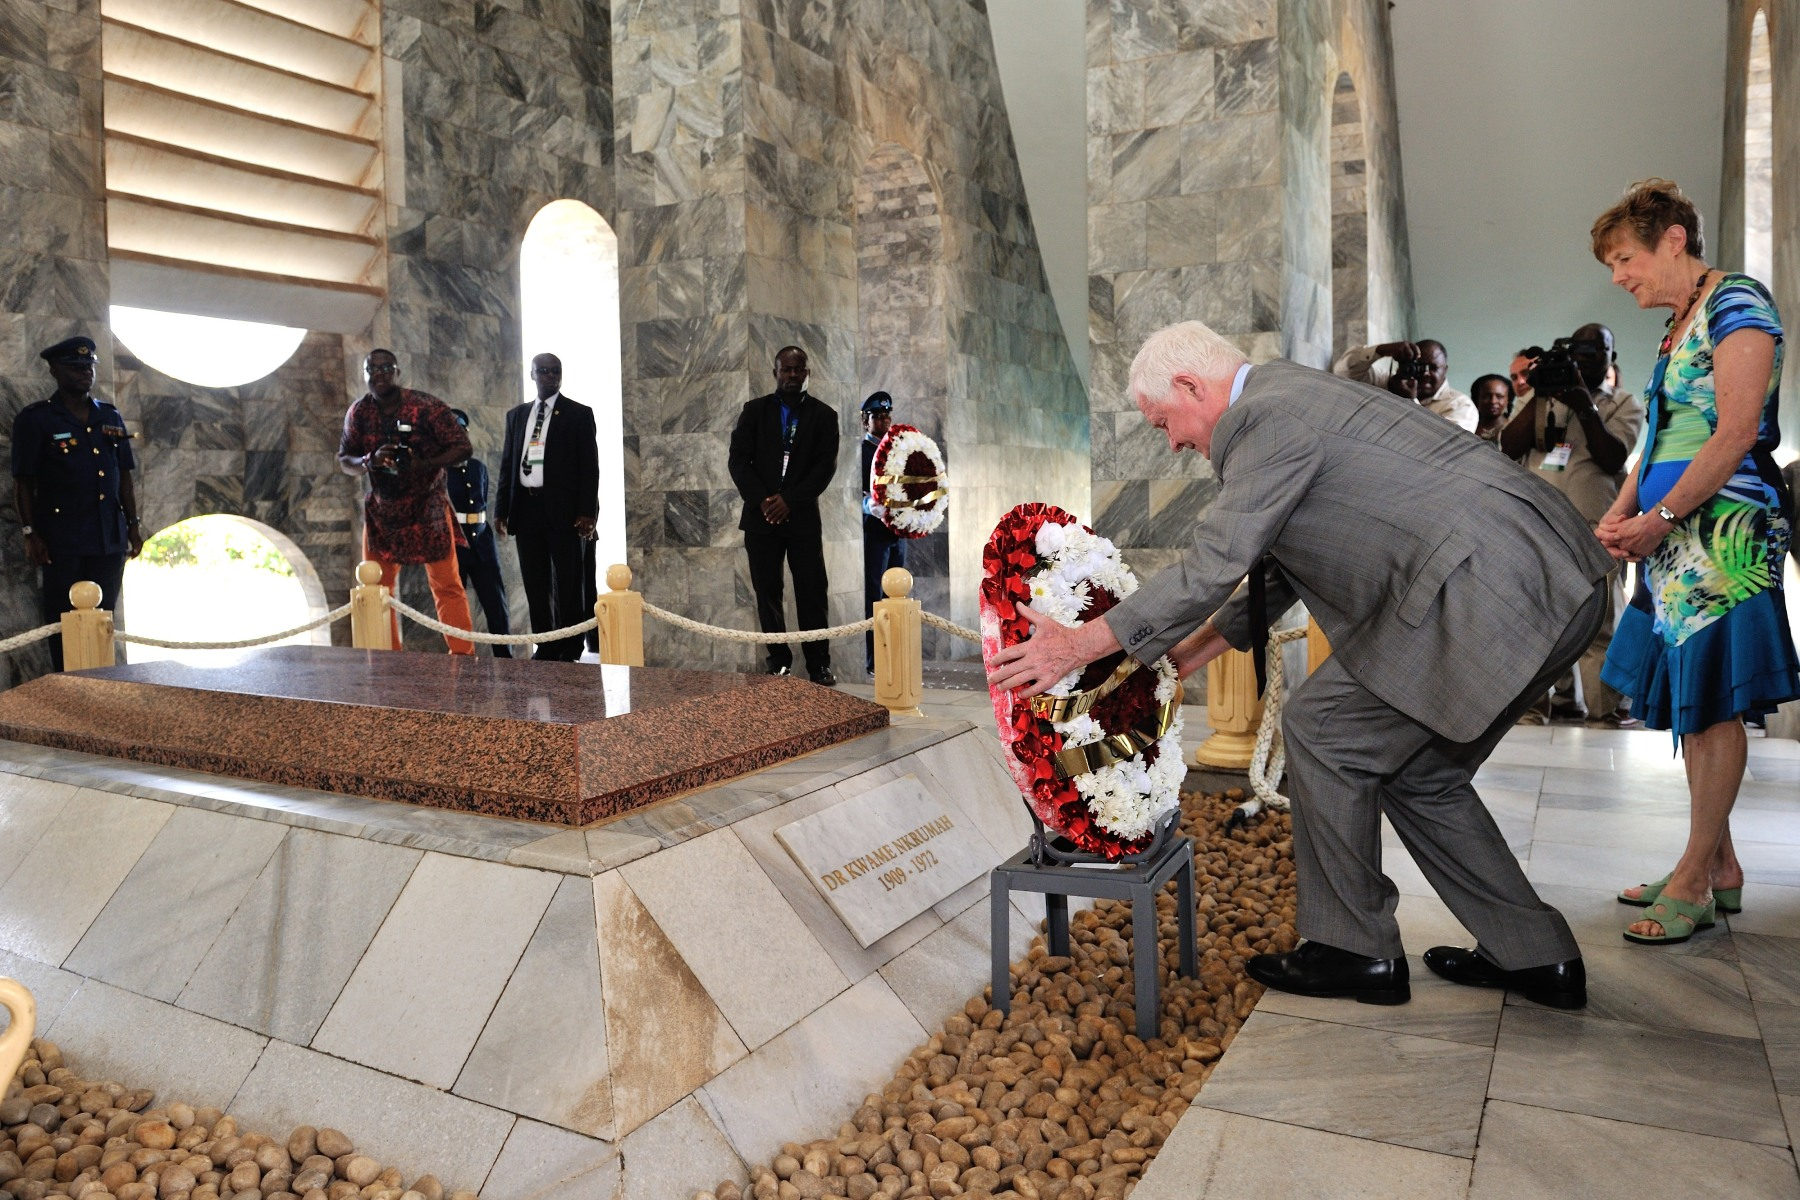 Their Excellencies laid wreaths on the tombs of the late president and his wife, Fathia Nkrumah.